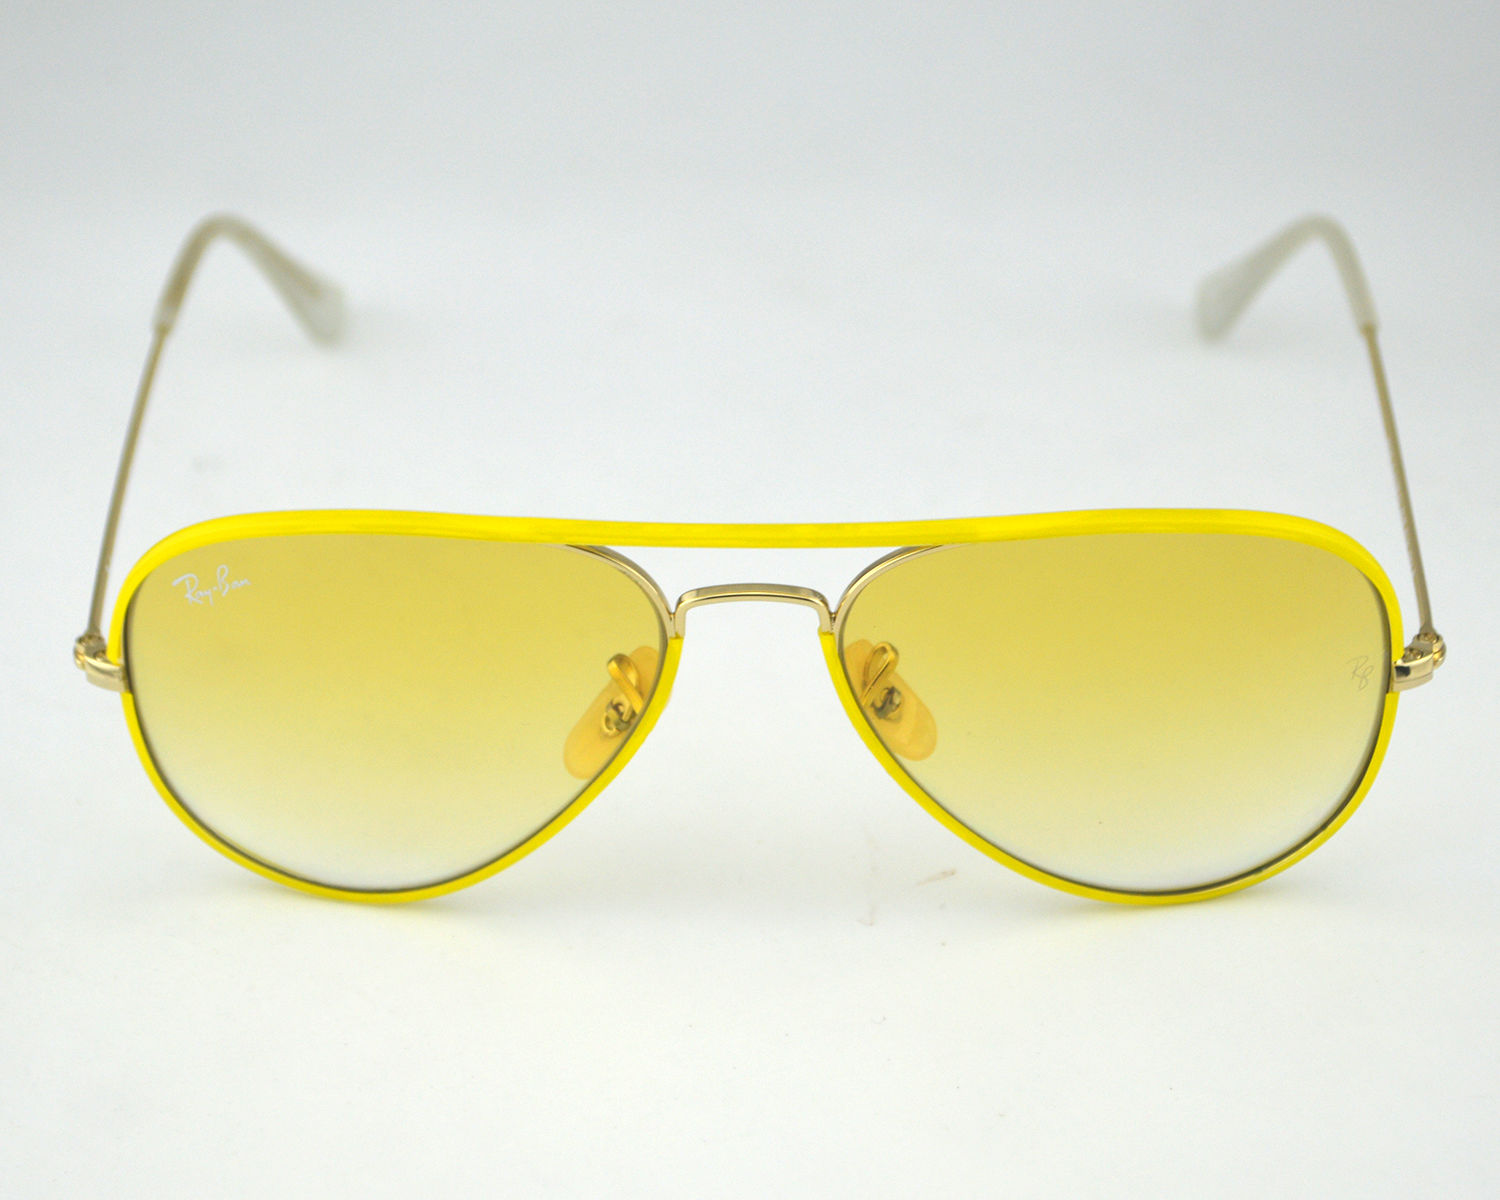 a1a984f5e24 Ray Ban RB 3025JM Aviator Full Color 001 X4 Yellow Ambermatic Glass Lens  Unisex Sunglasses 55mm